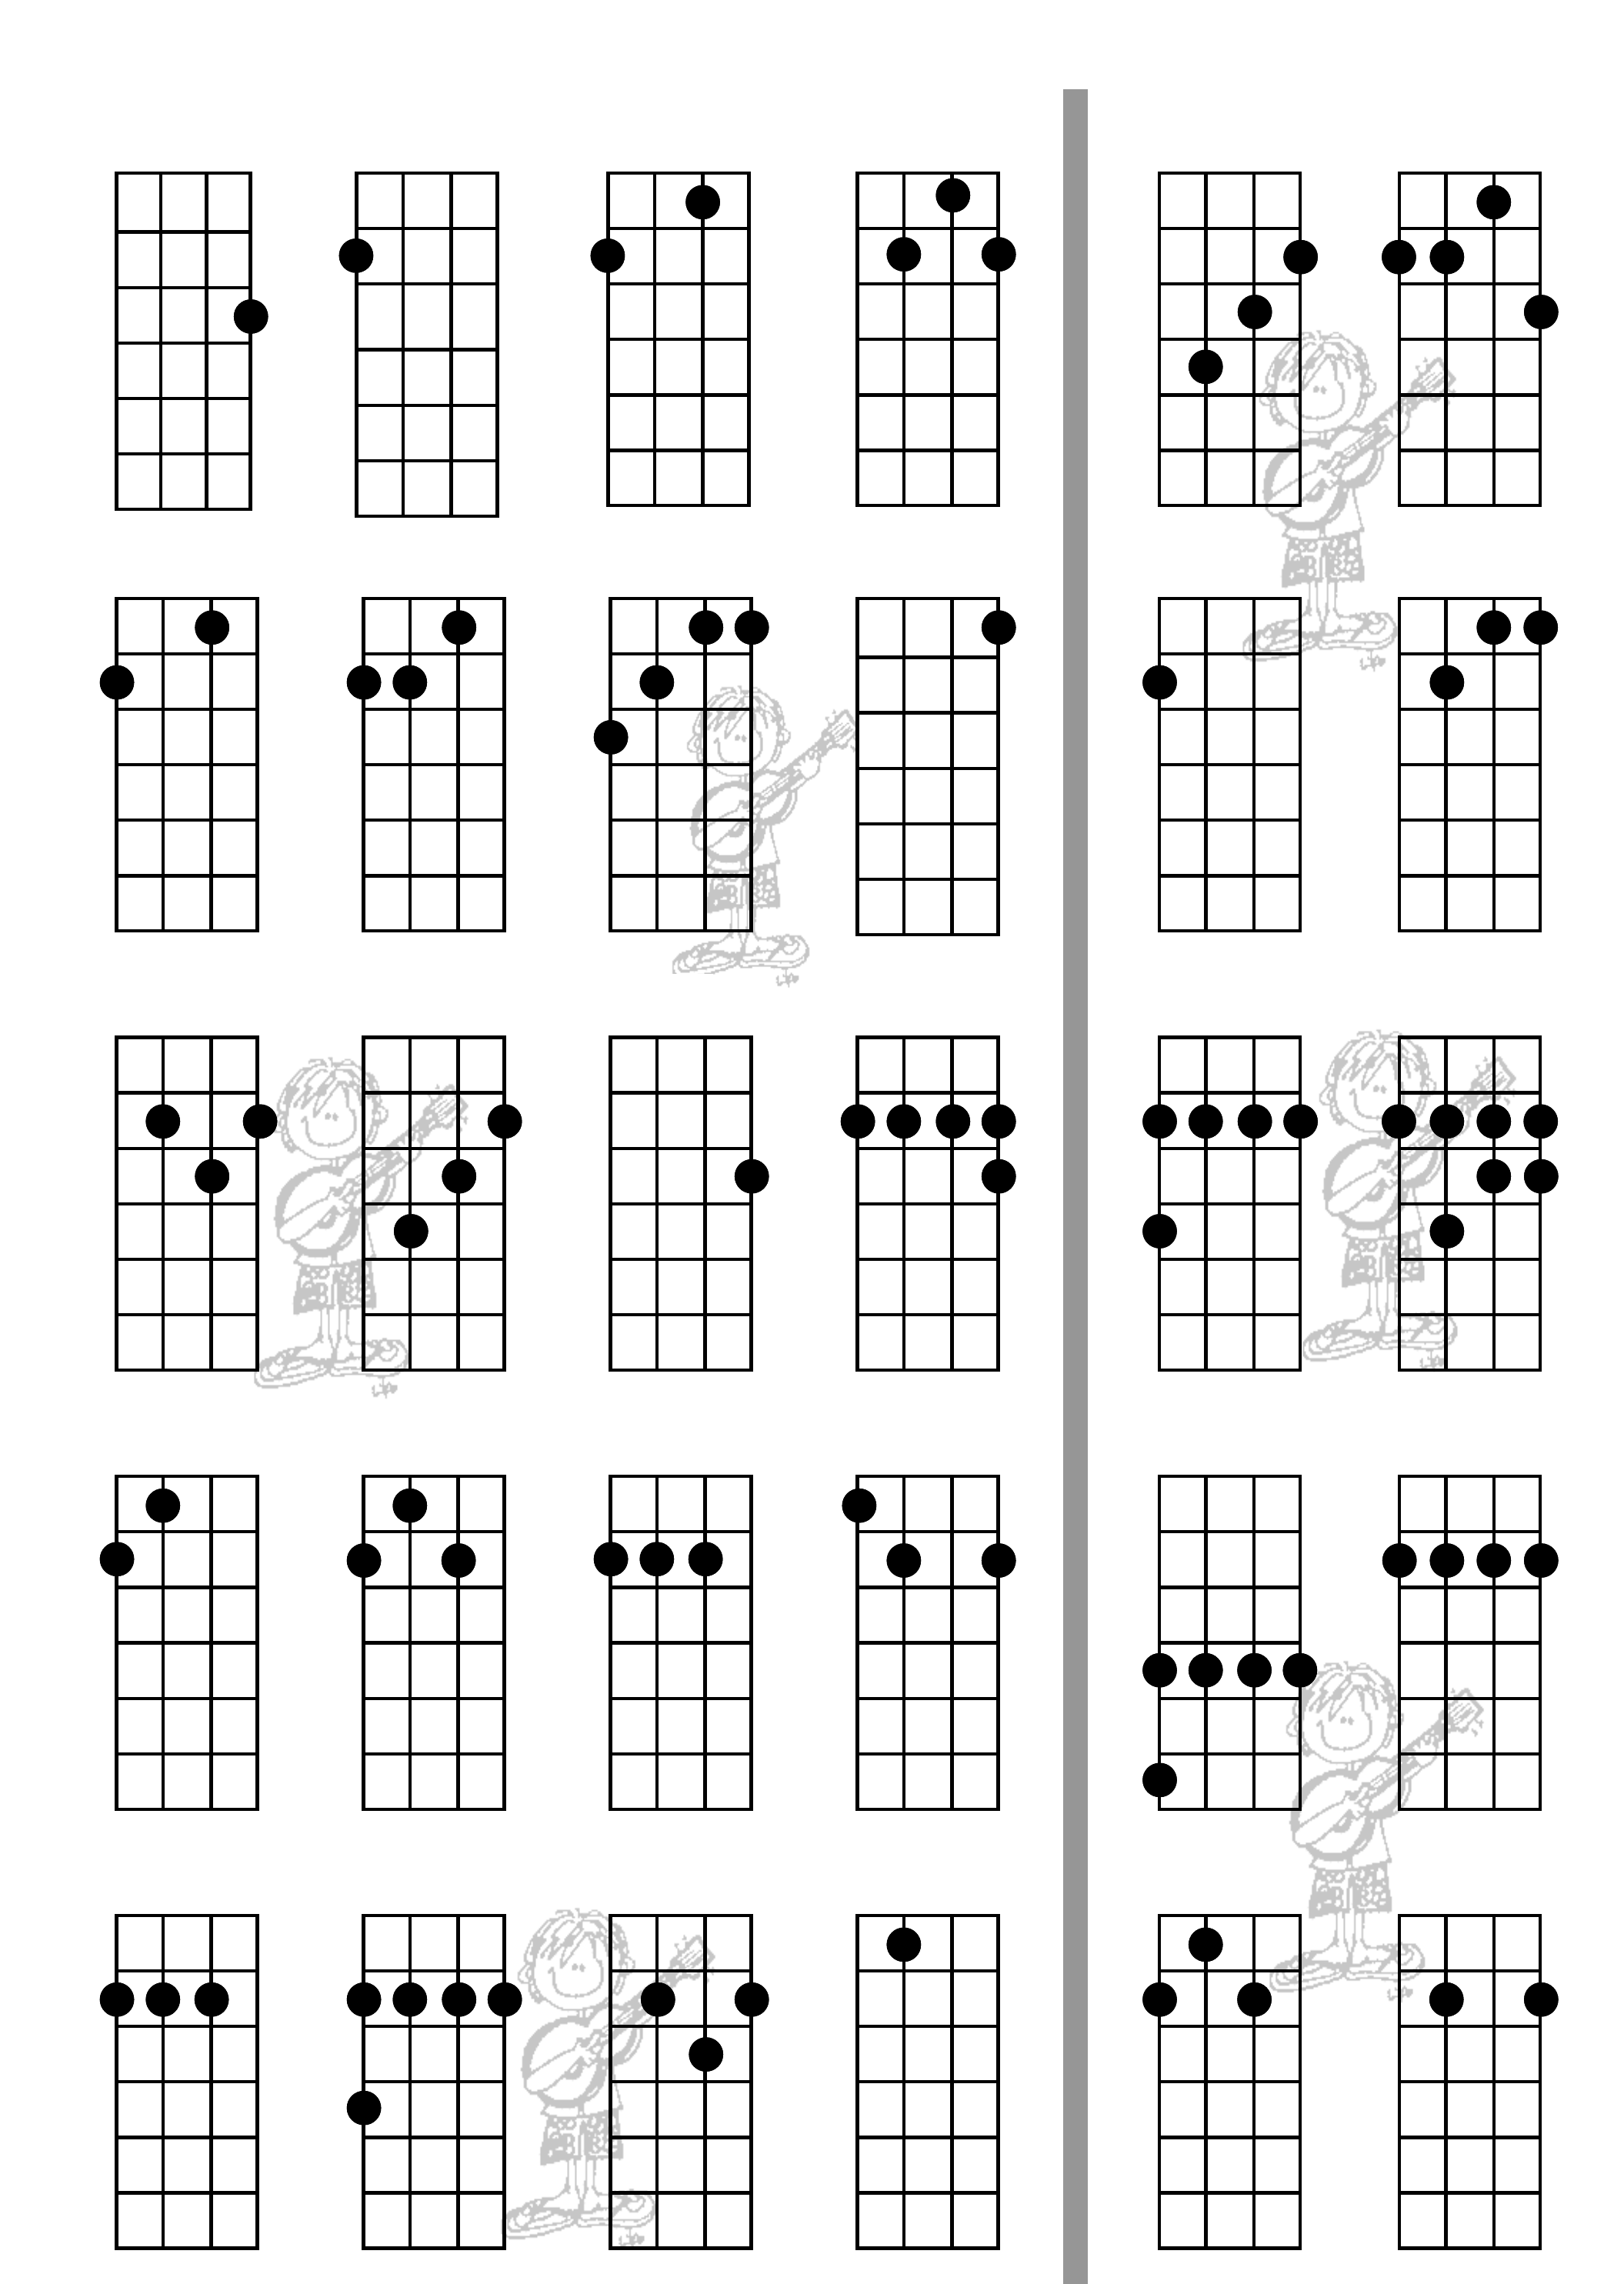 Ukulele Chord Progressions Chart Free Download